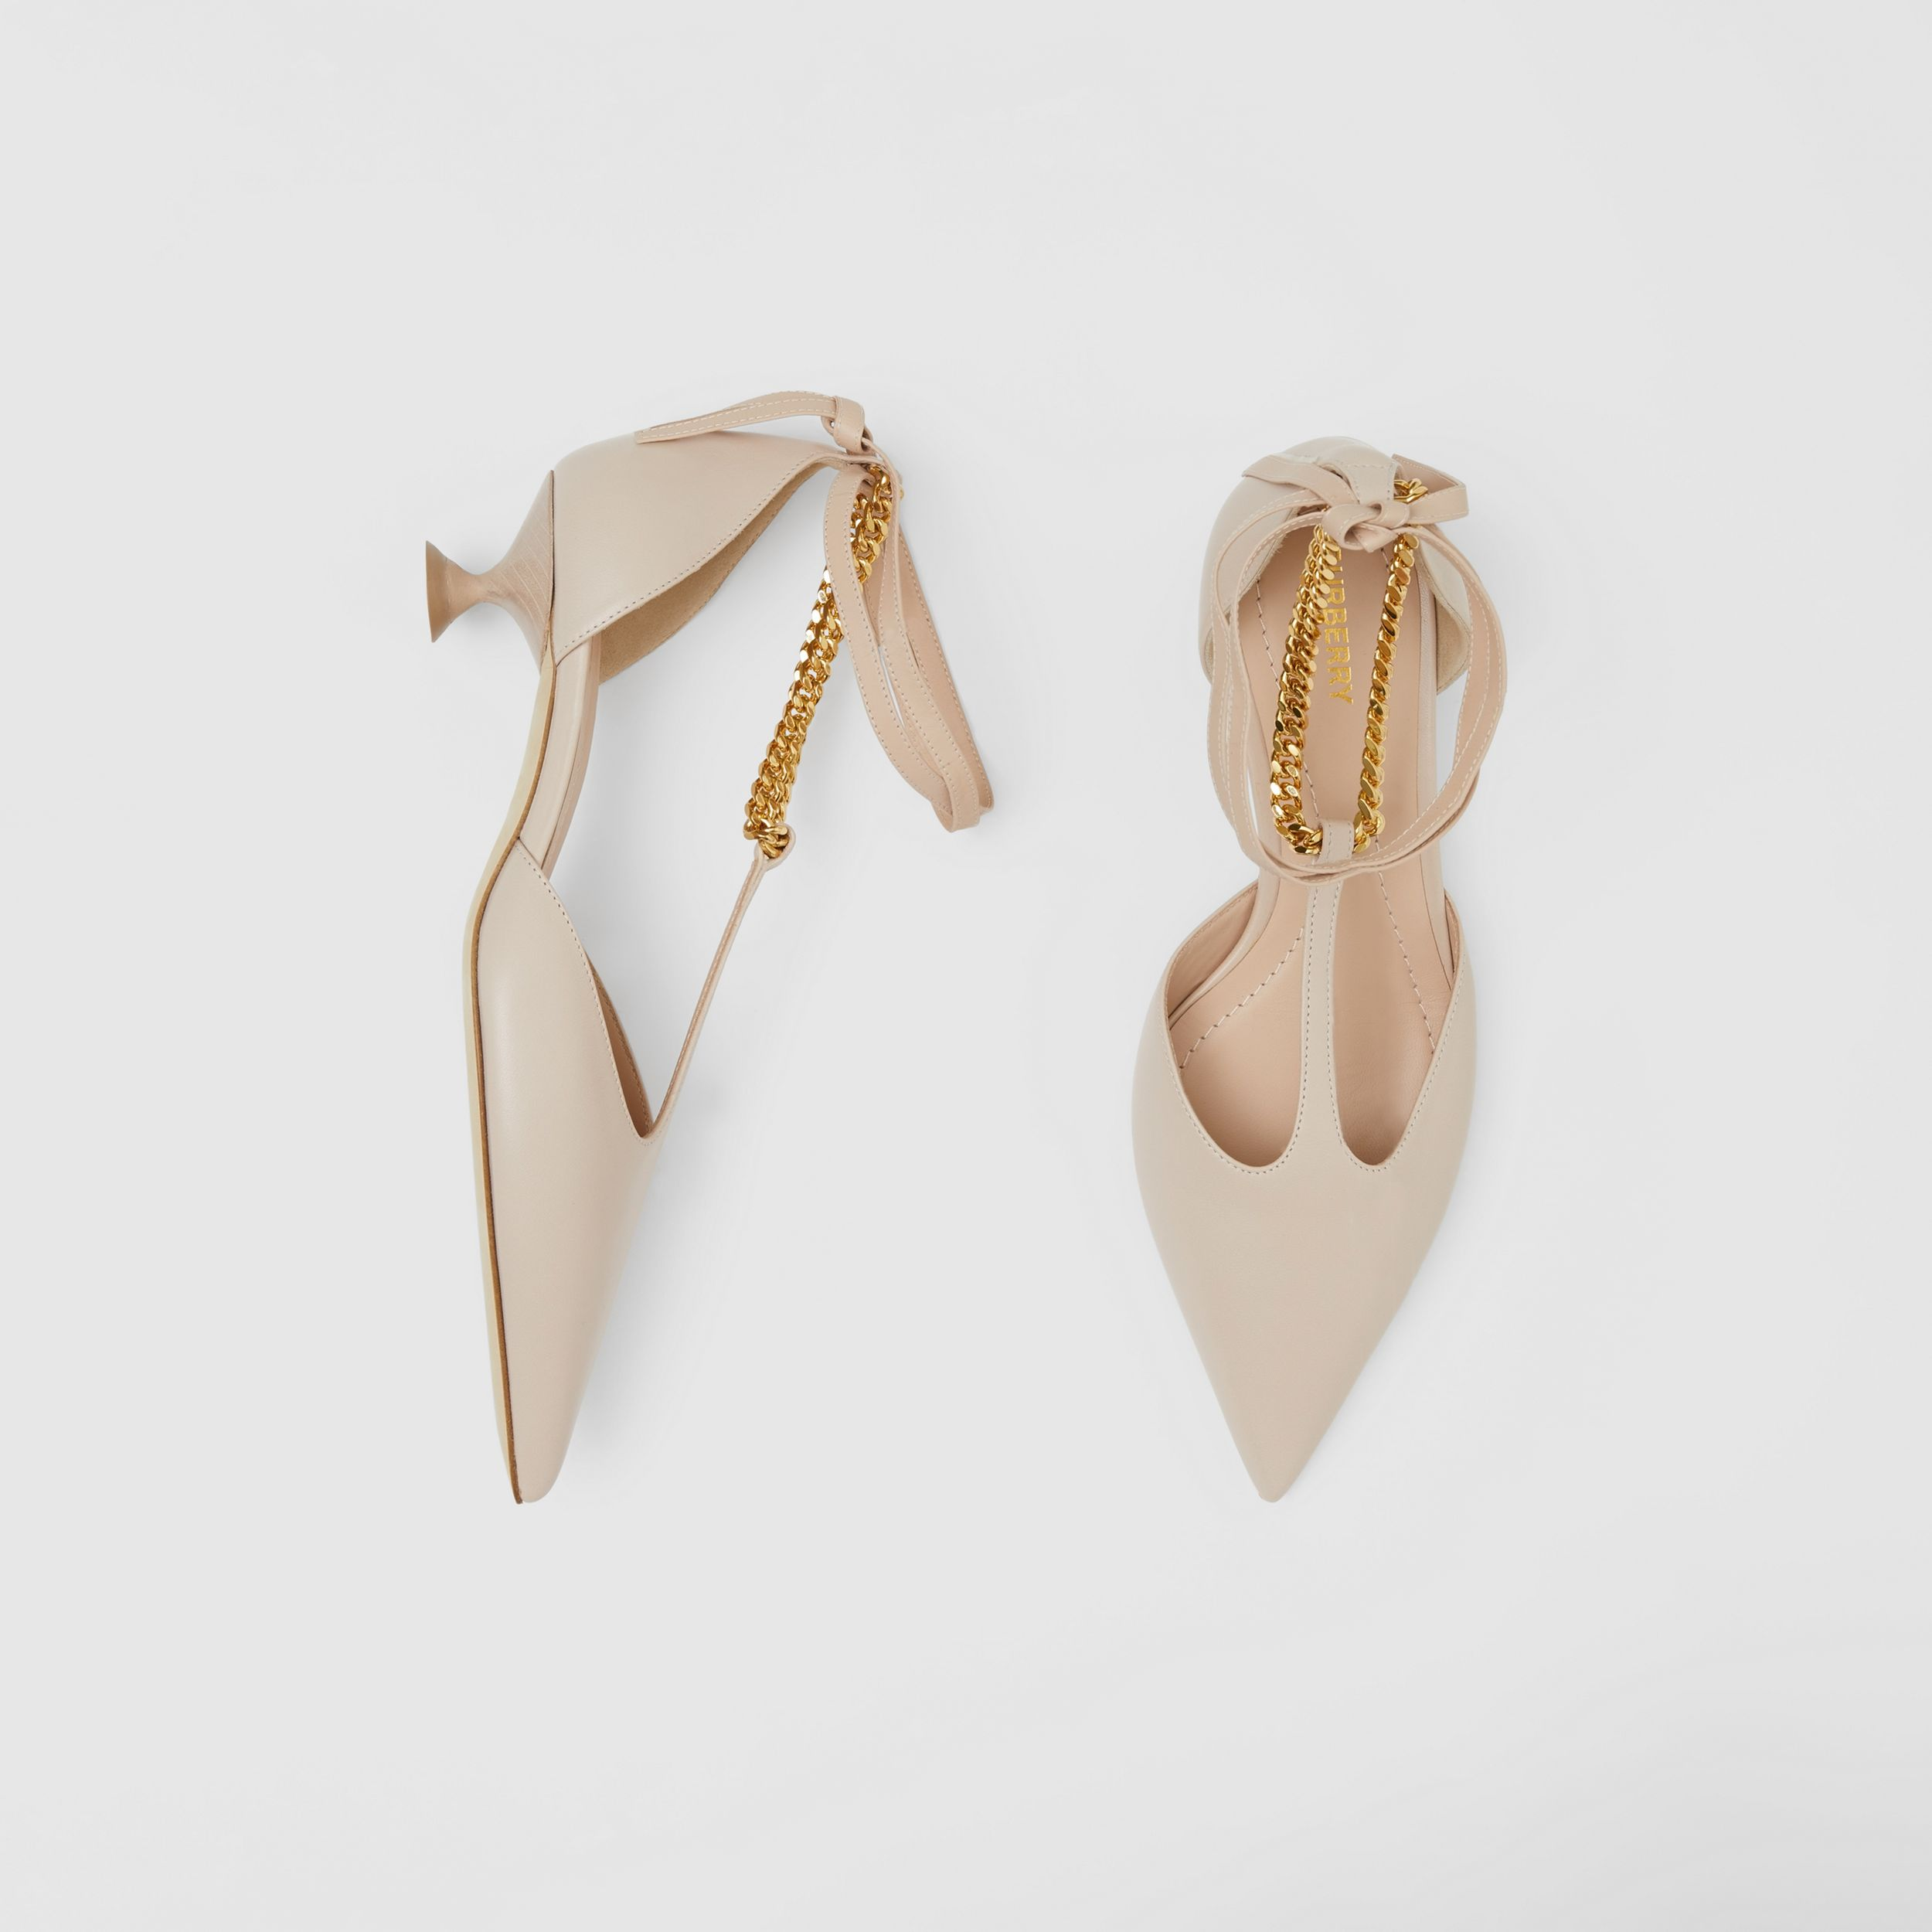 Chain Detail Lambskin Pumps in Nude - Women | Burberry - 1